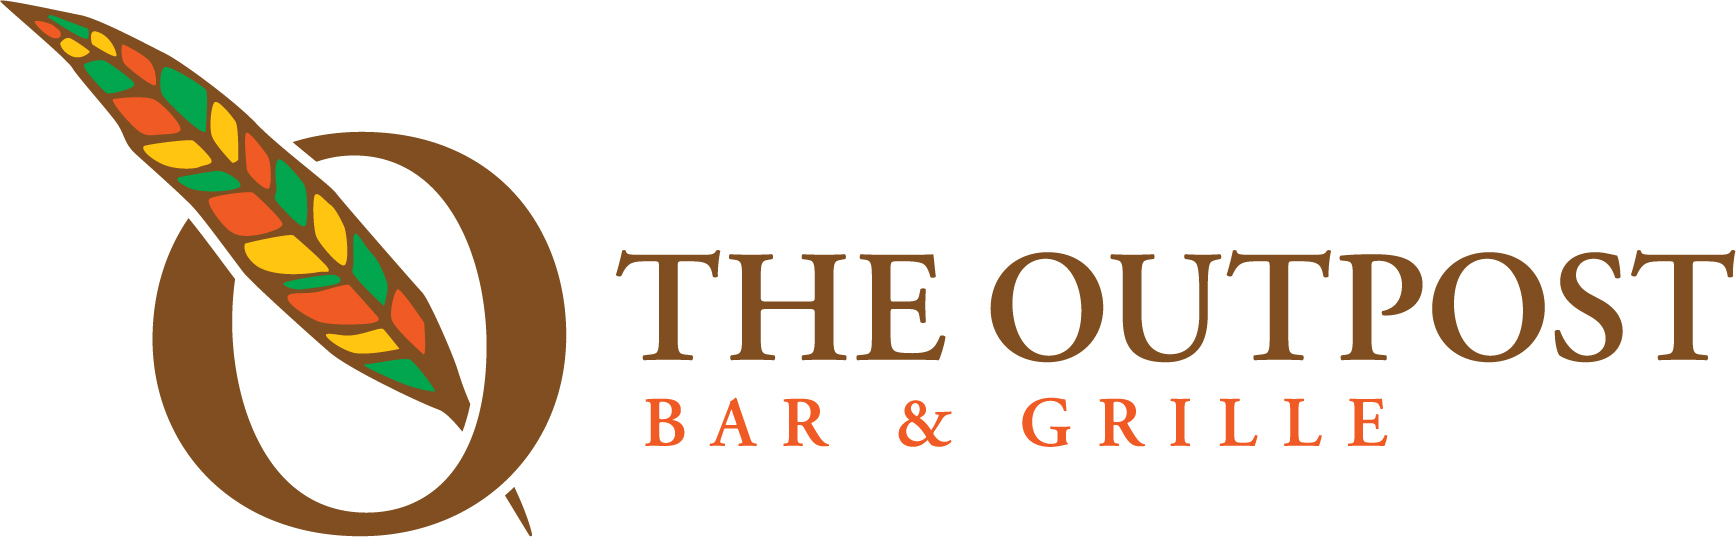 The Outpost Bar and Grille